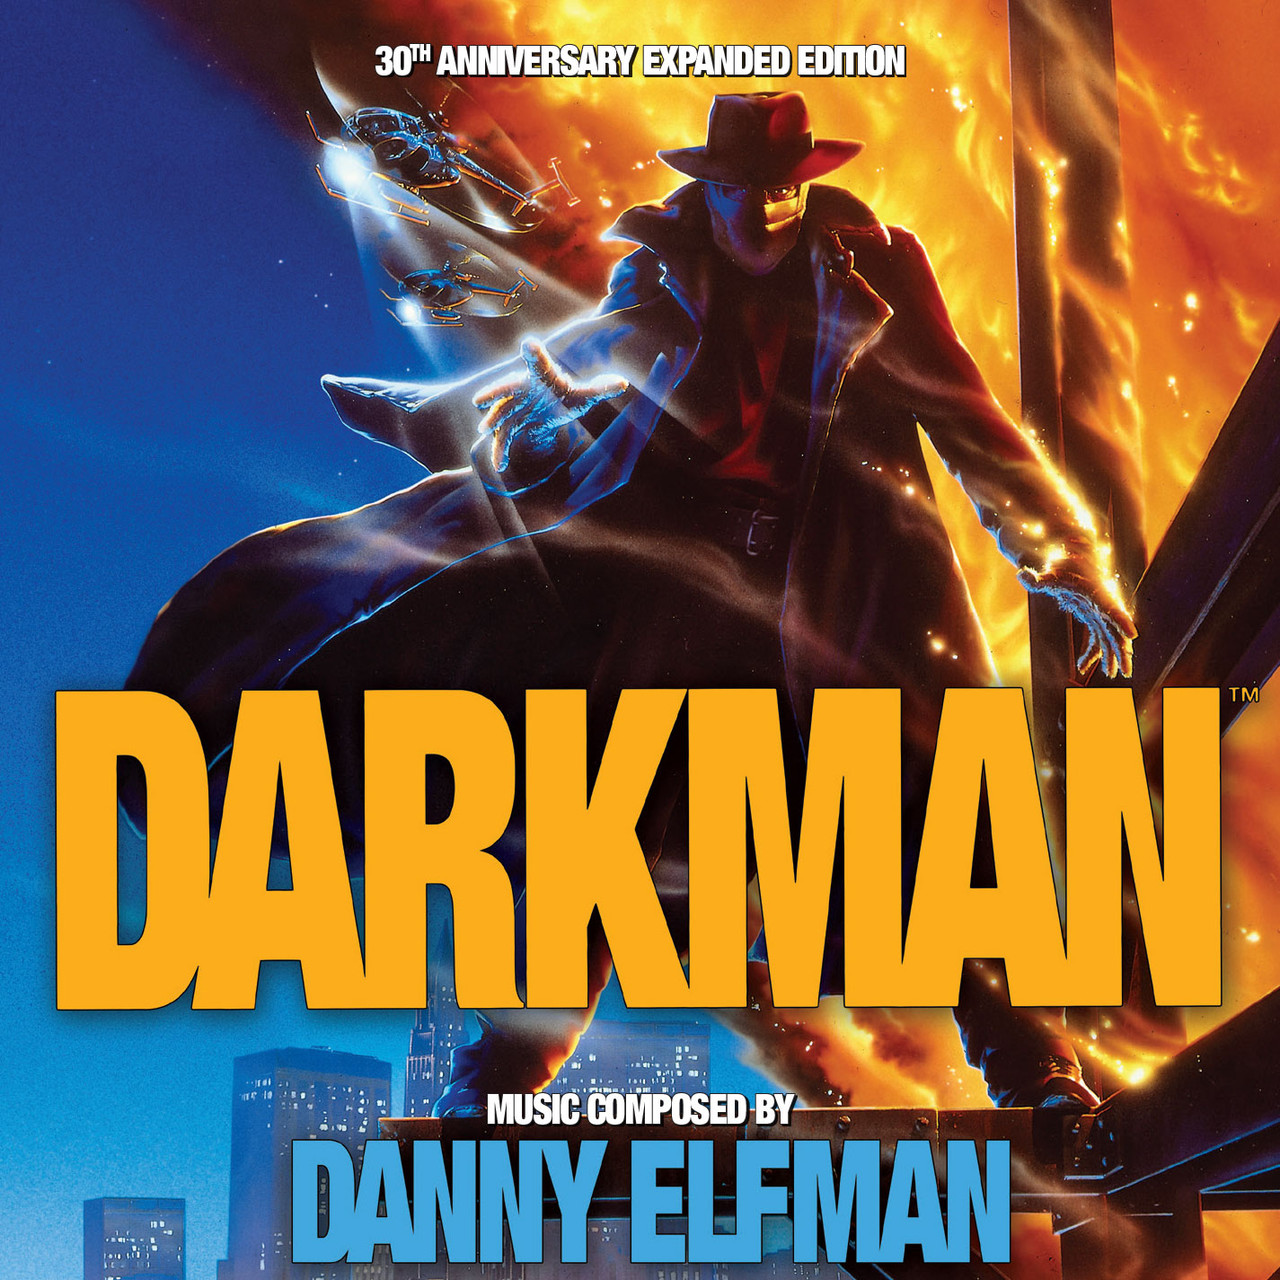 darkman-cover__52684.1580158746.jpg?c=2&